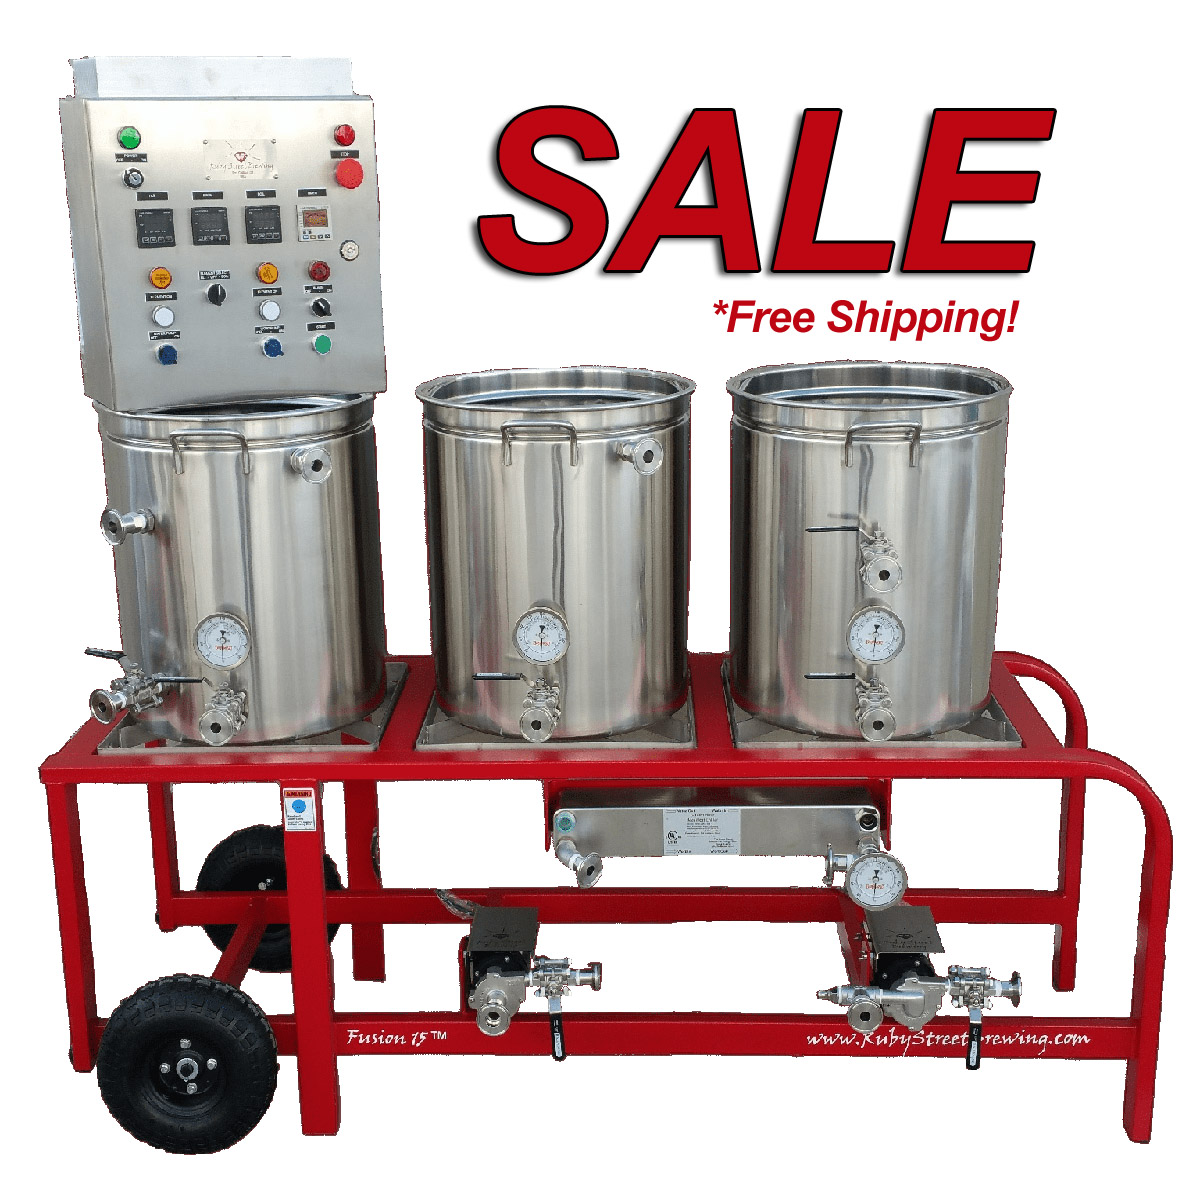 Homebrew Sale for Save up to $250 and get Free Shipping on Ruby Street Homebrewing Systems Sale